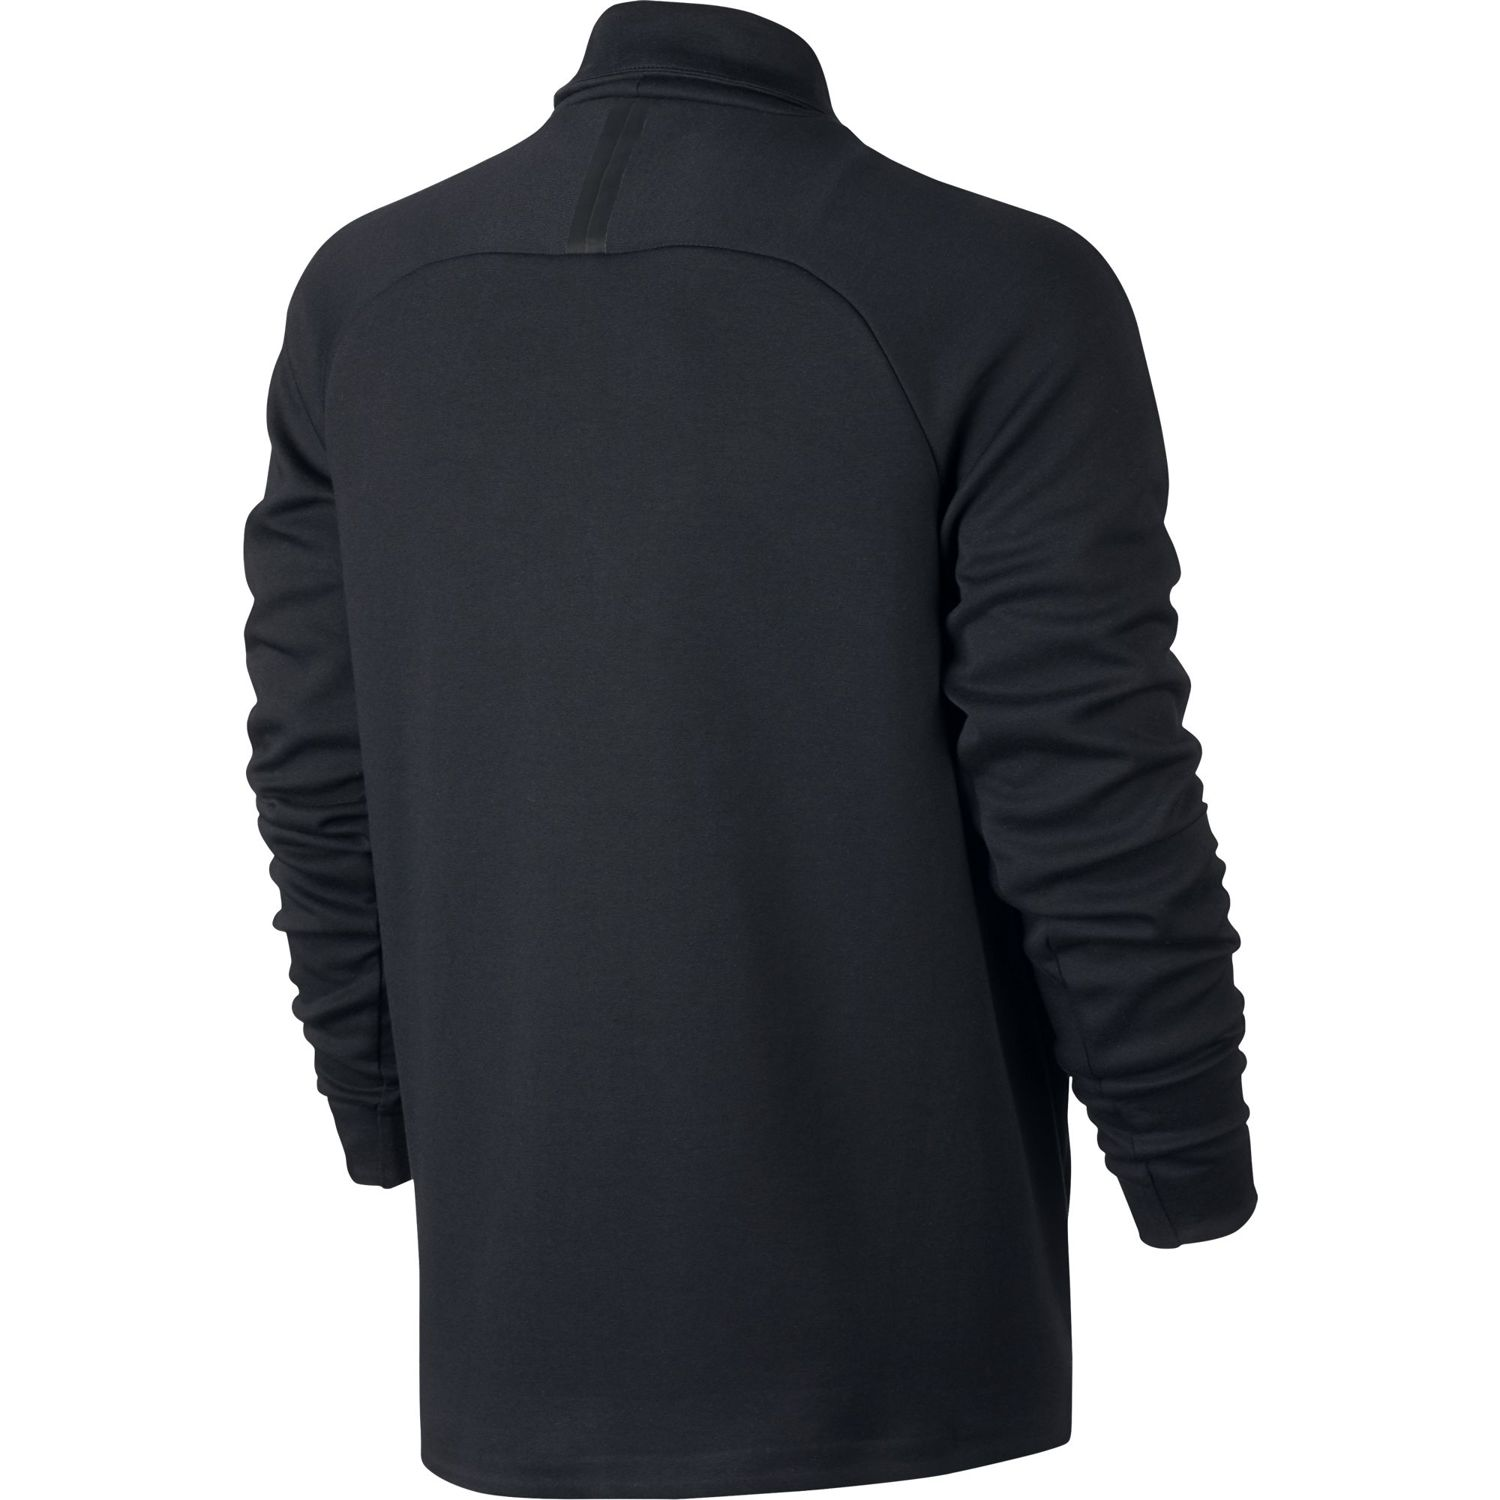 Bluza Nike Sportswear Tech Fleece 805164 010